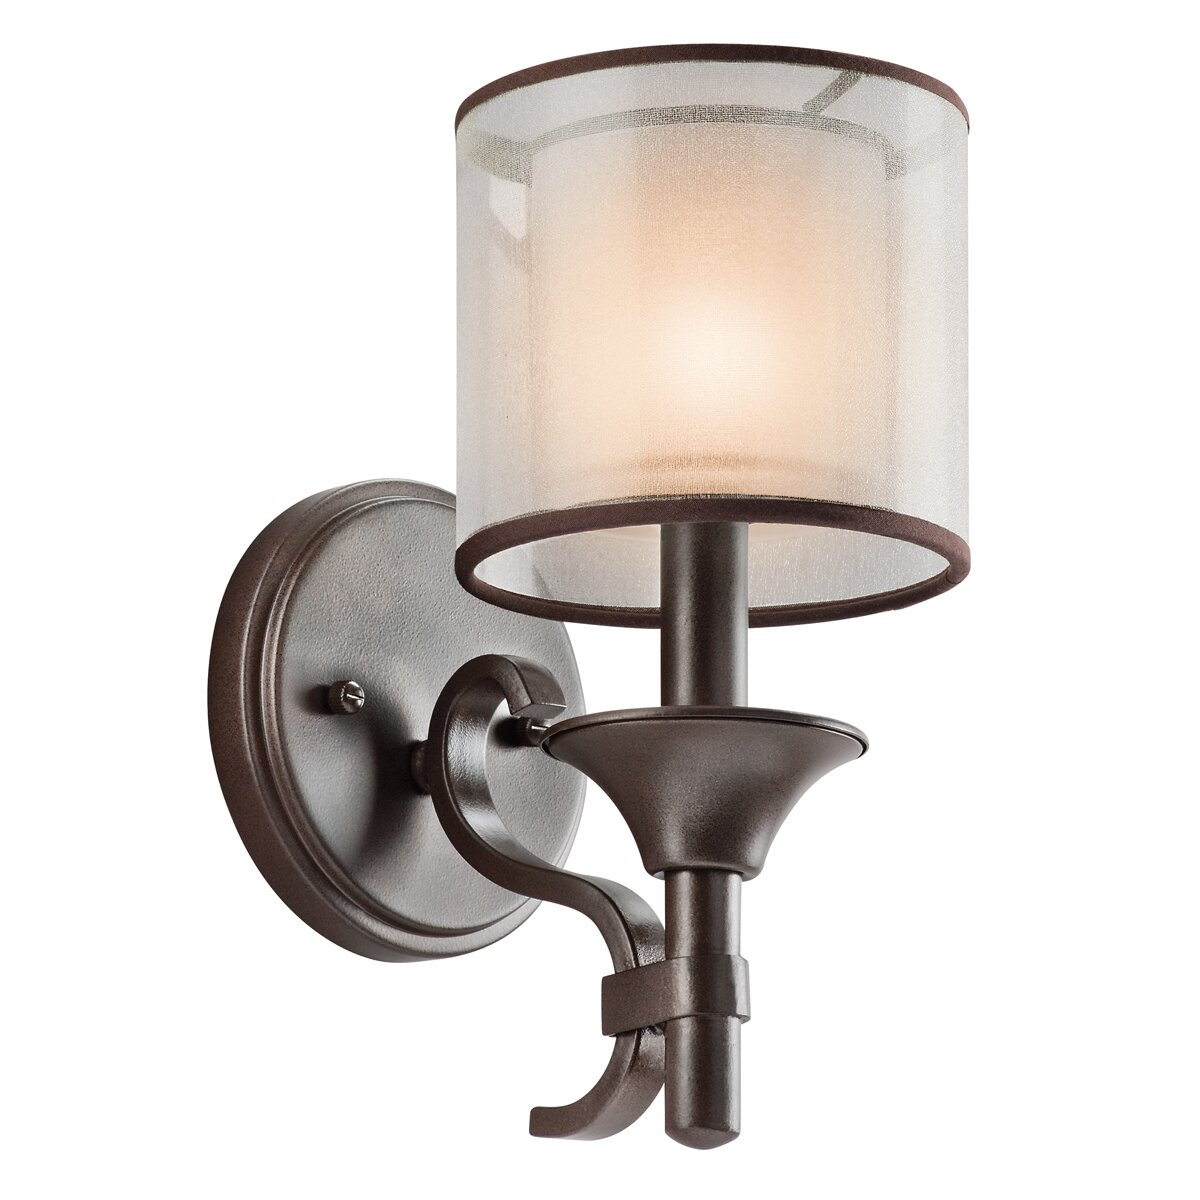 Kichler Family Spaces 1 Light Wall Sconce Reviews Wayfair